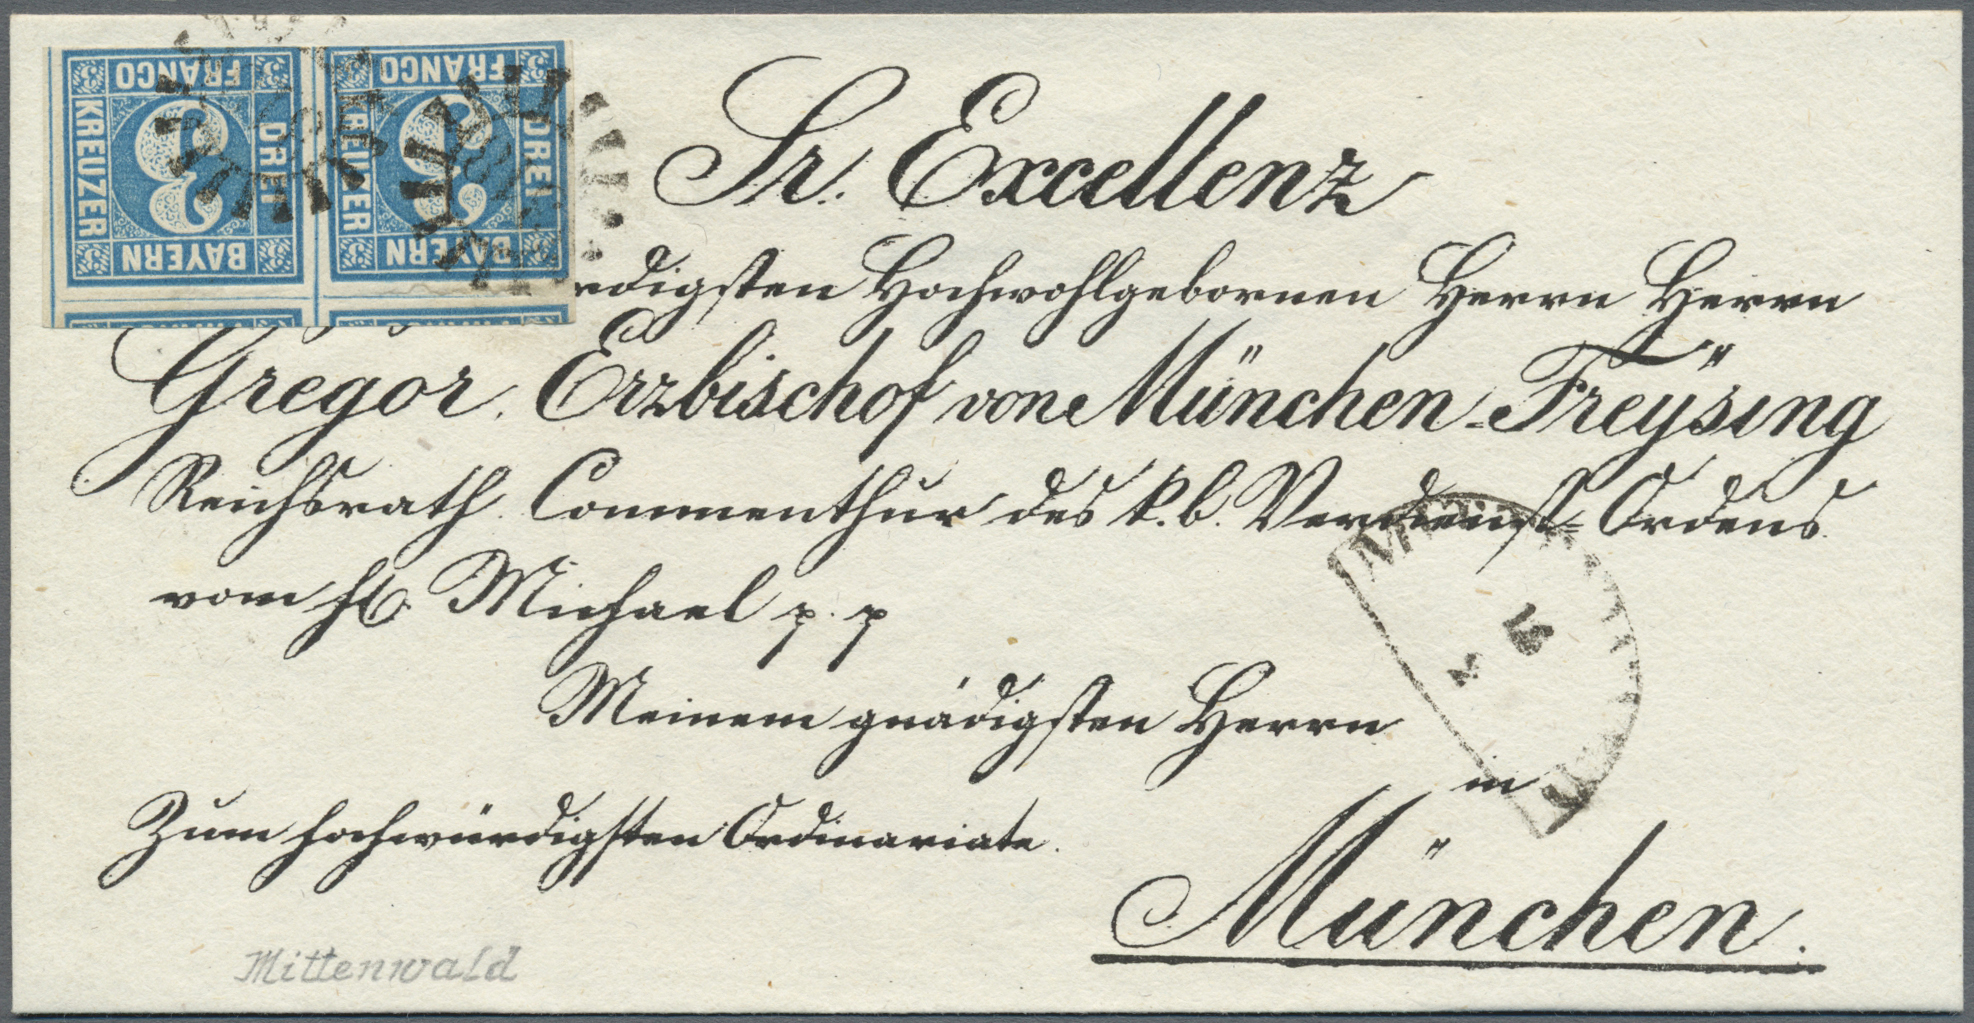 Lot 17076 - Bayern - Marken und Briefe  -  Auktionshaus Christoph Gärtner GmbH & Co. KG Auction #40 Germany, Picture Post Cards, Collections Overseas, Thematics